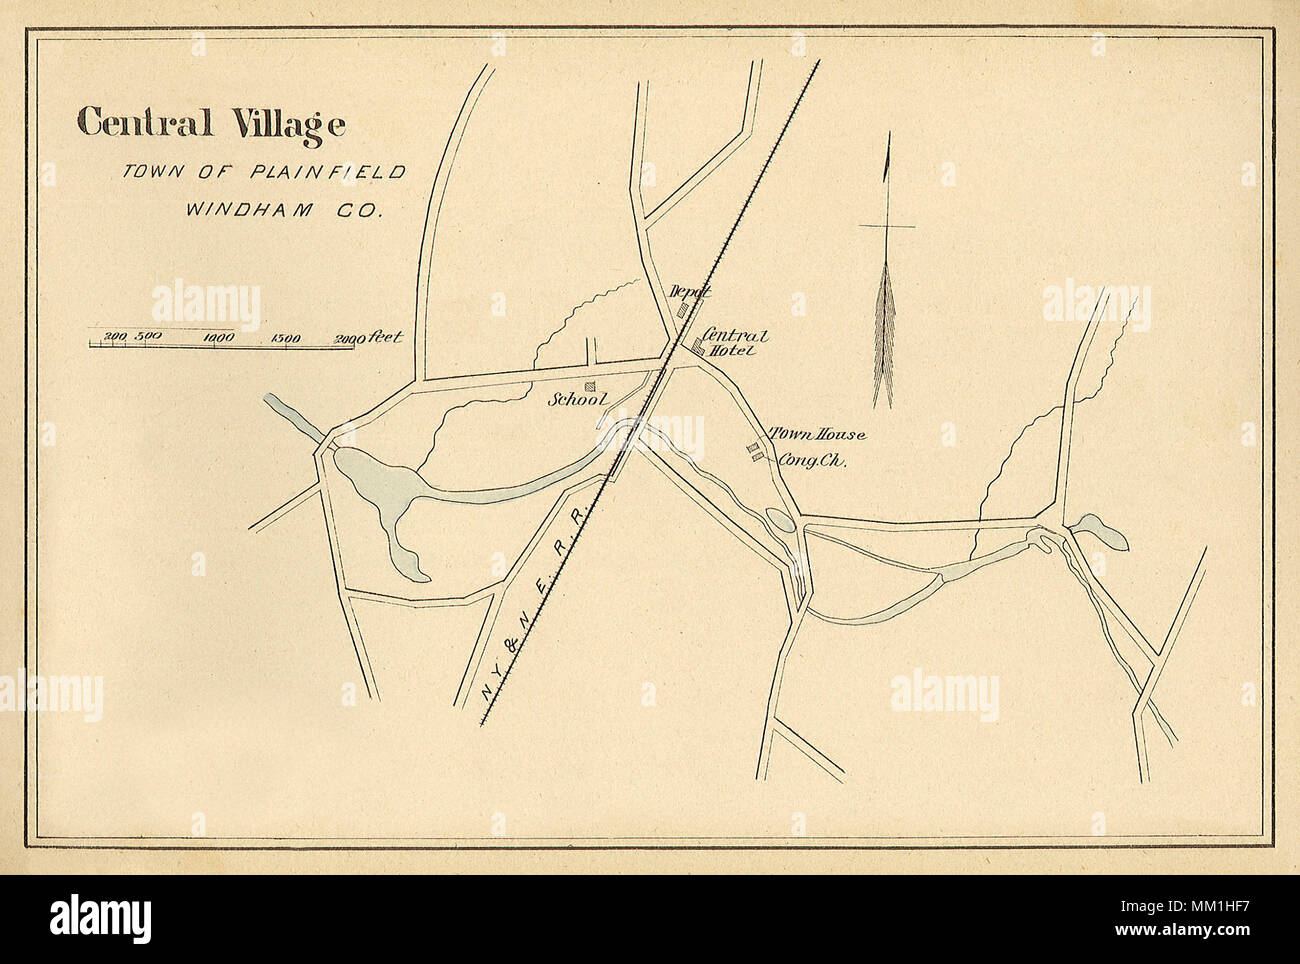 Connecticut State Of Stock Photos Diagram A House In With The Wiring Map Central Village Town Plainfield 1893 Image